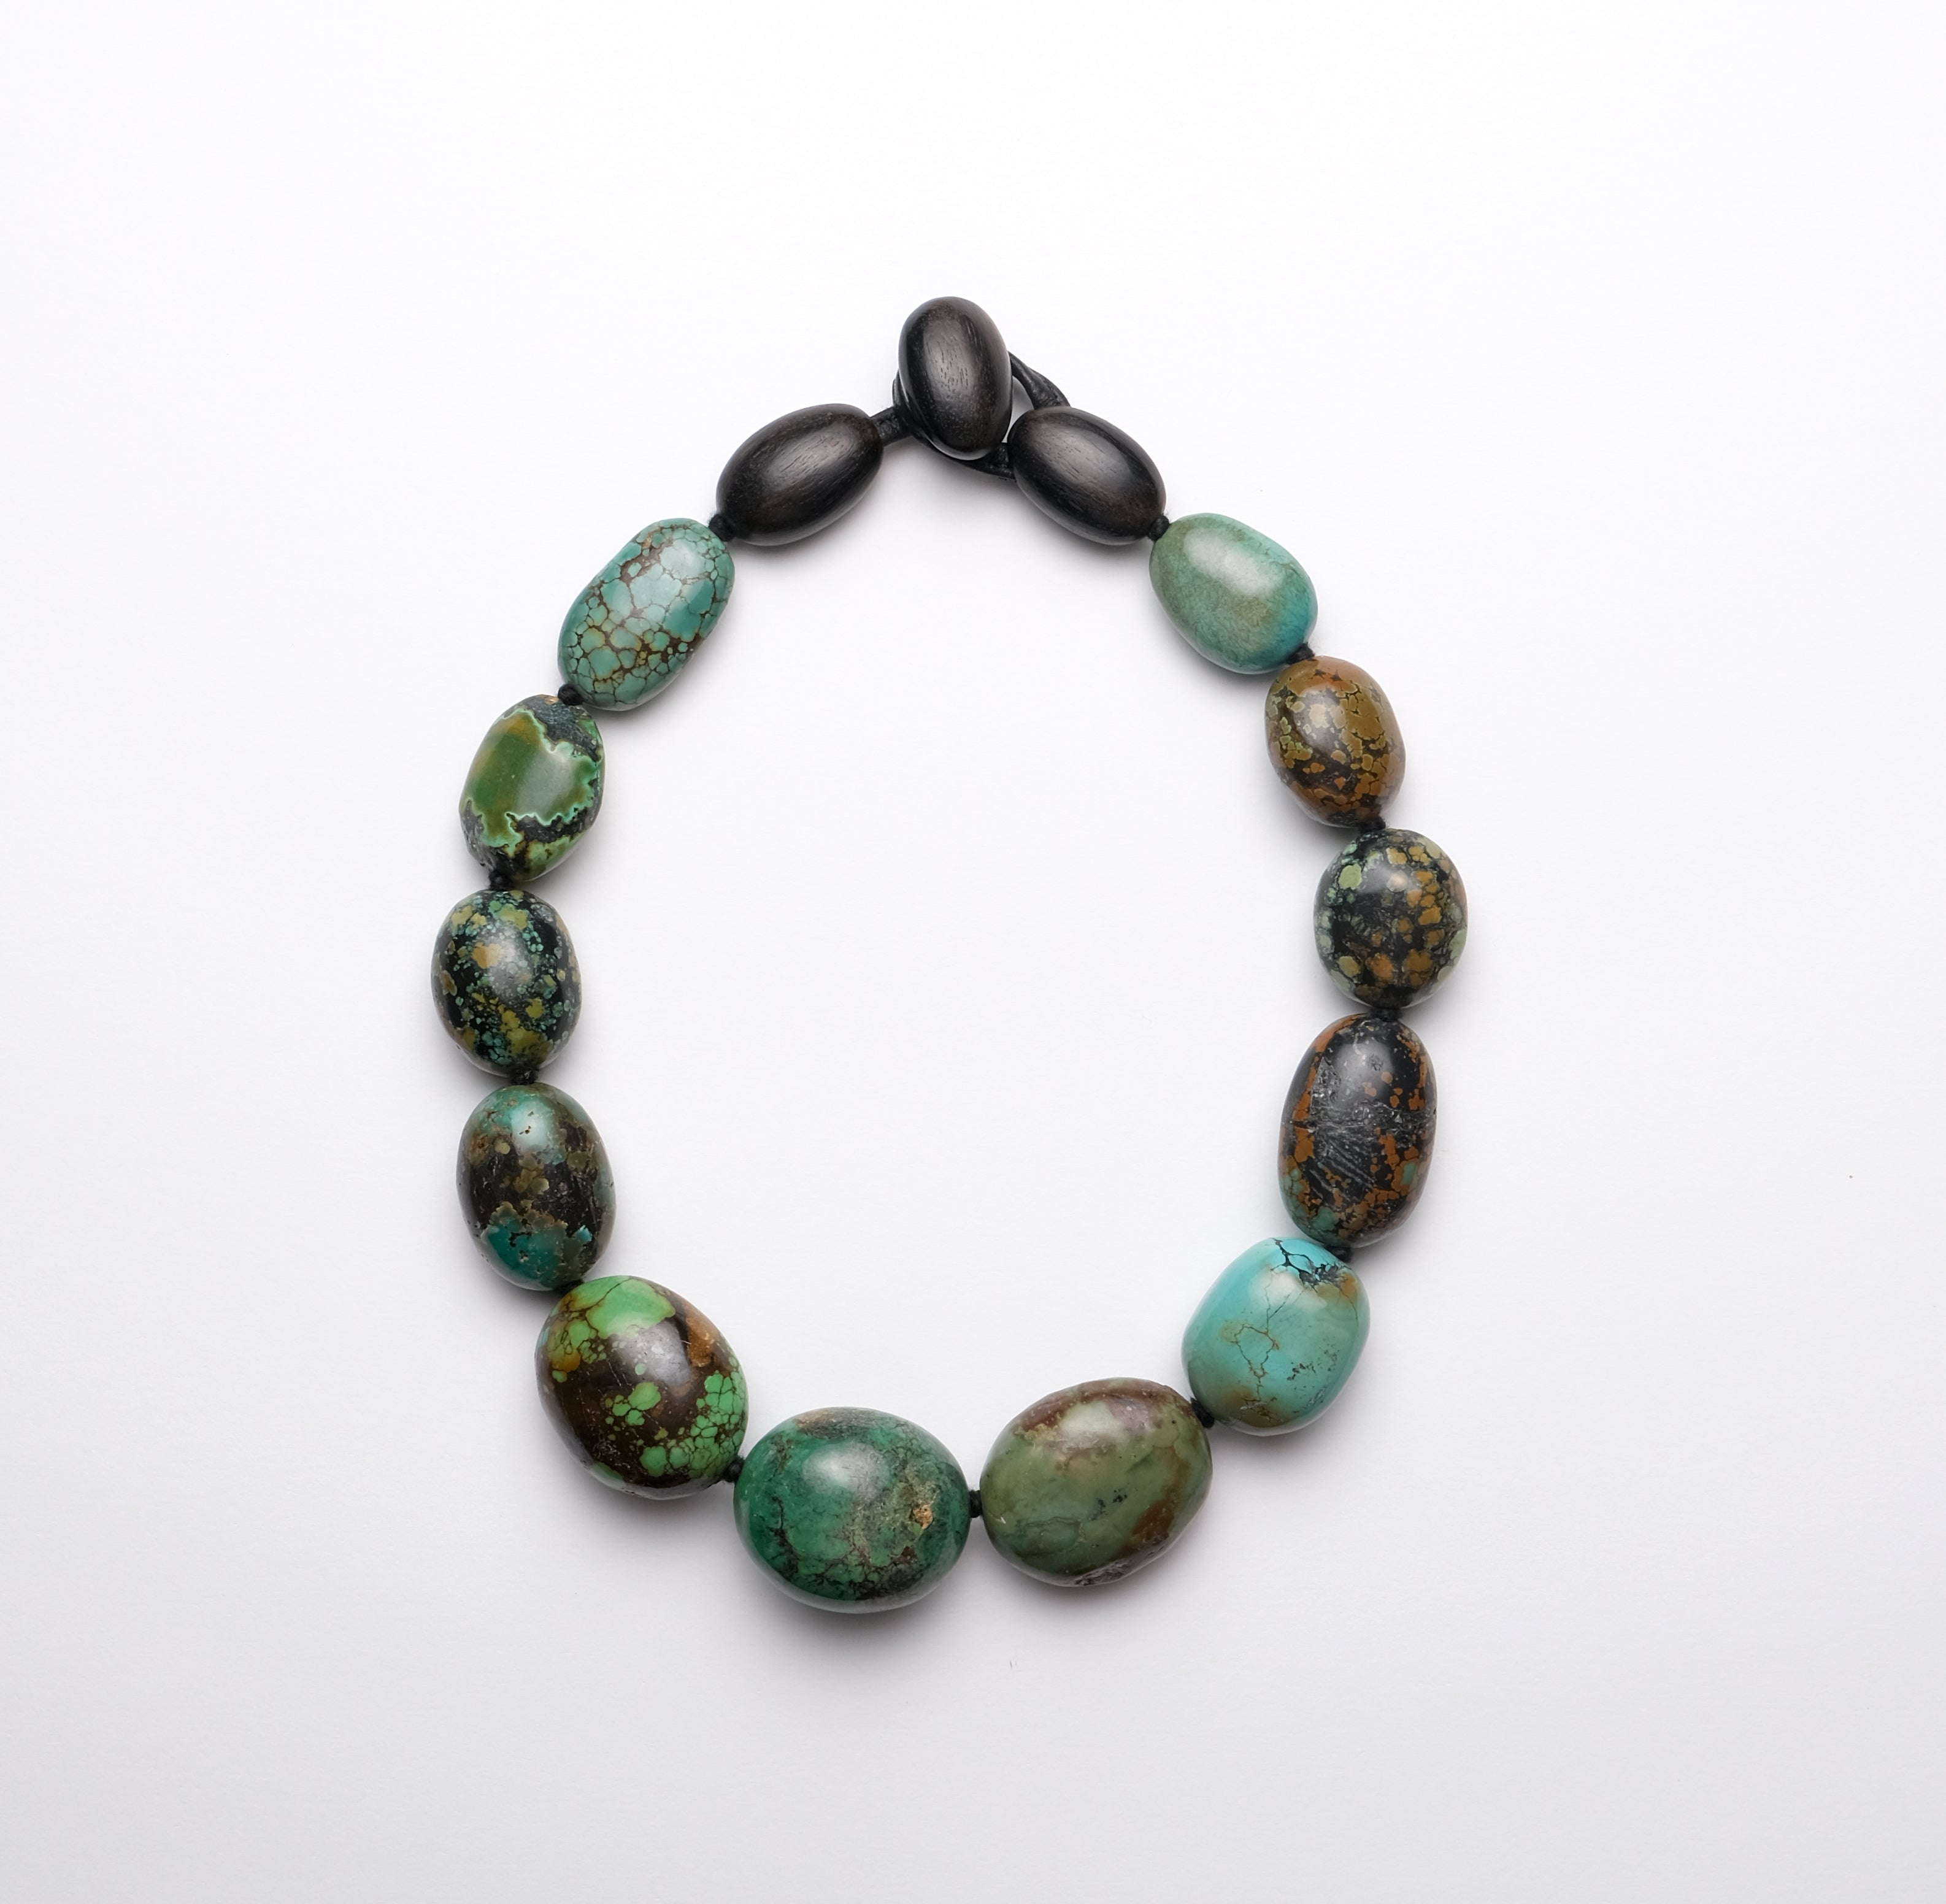 Necklace in turquoise